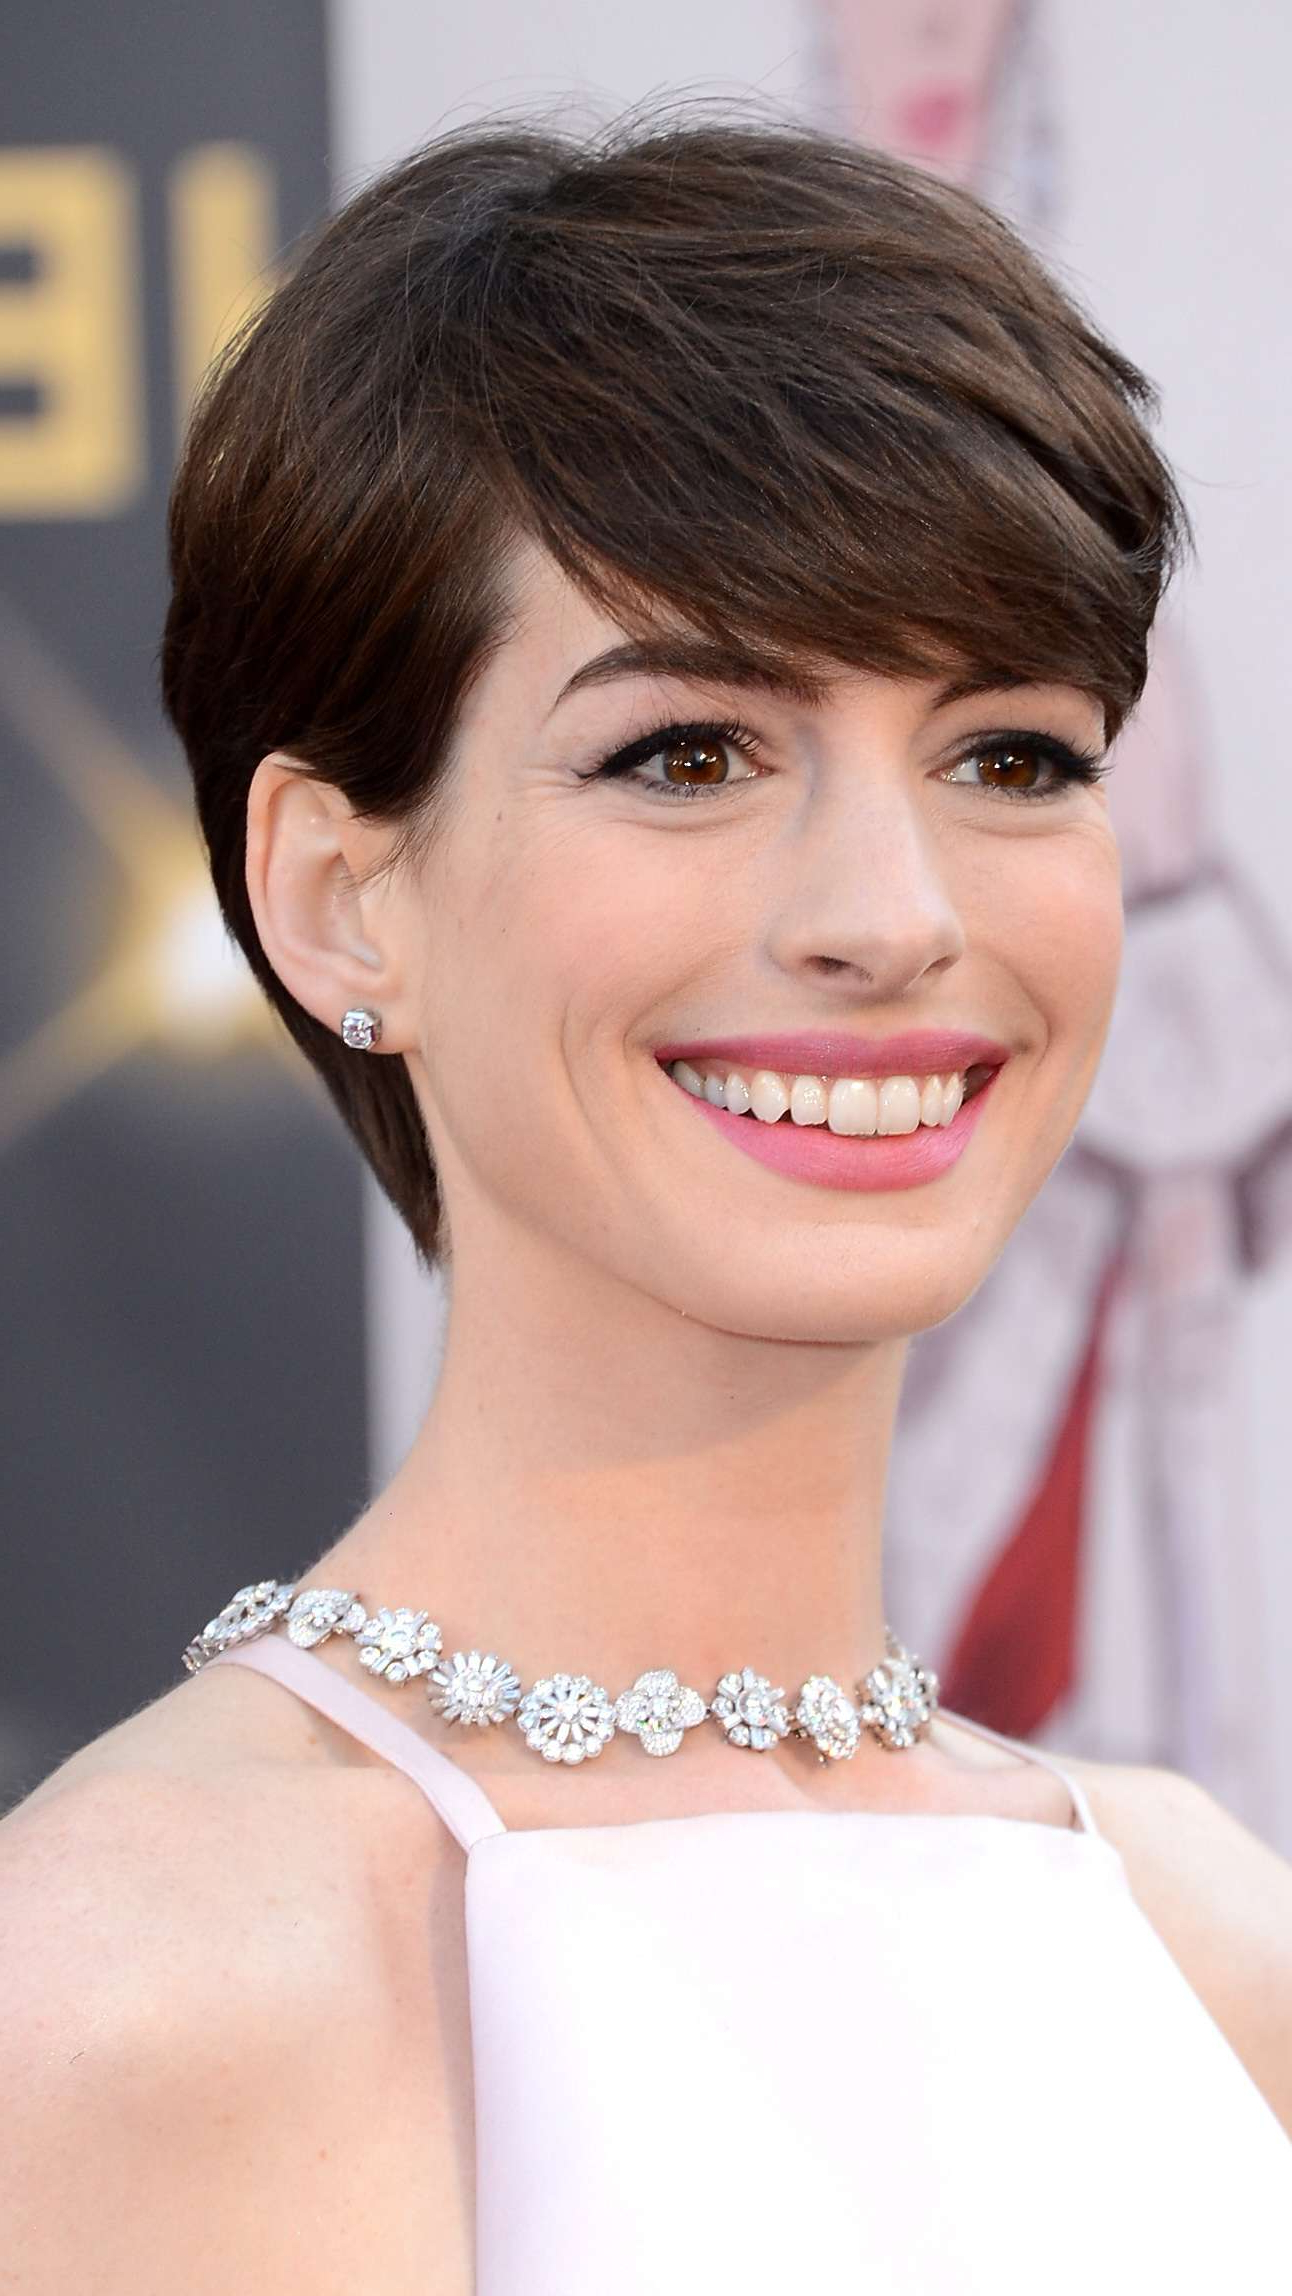 22 Inspiring Short Haircuts For Every Face Shape Inside Short Haircuts For Square Face (View 9 of 25)